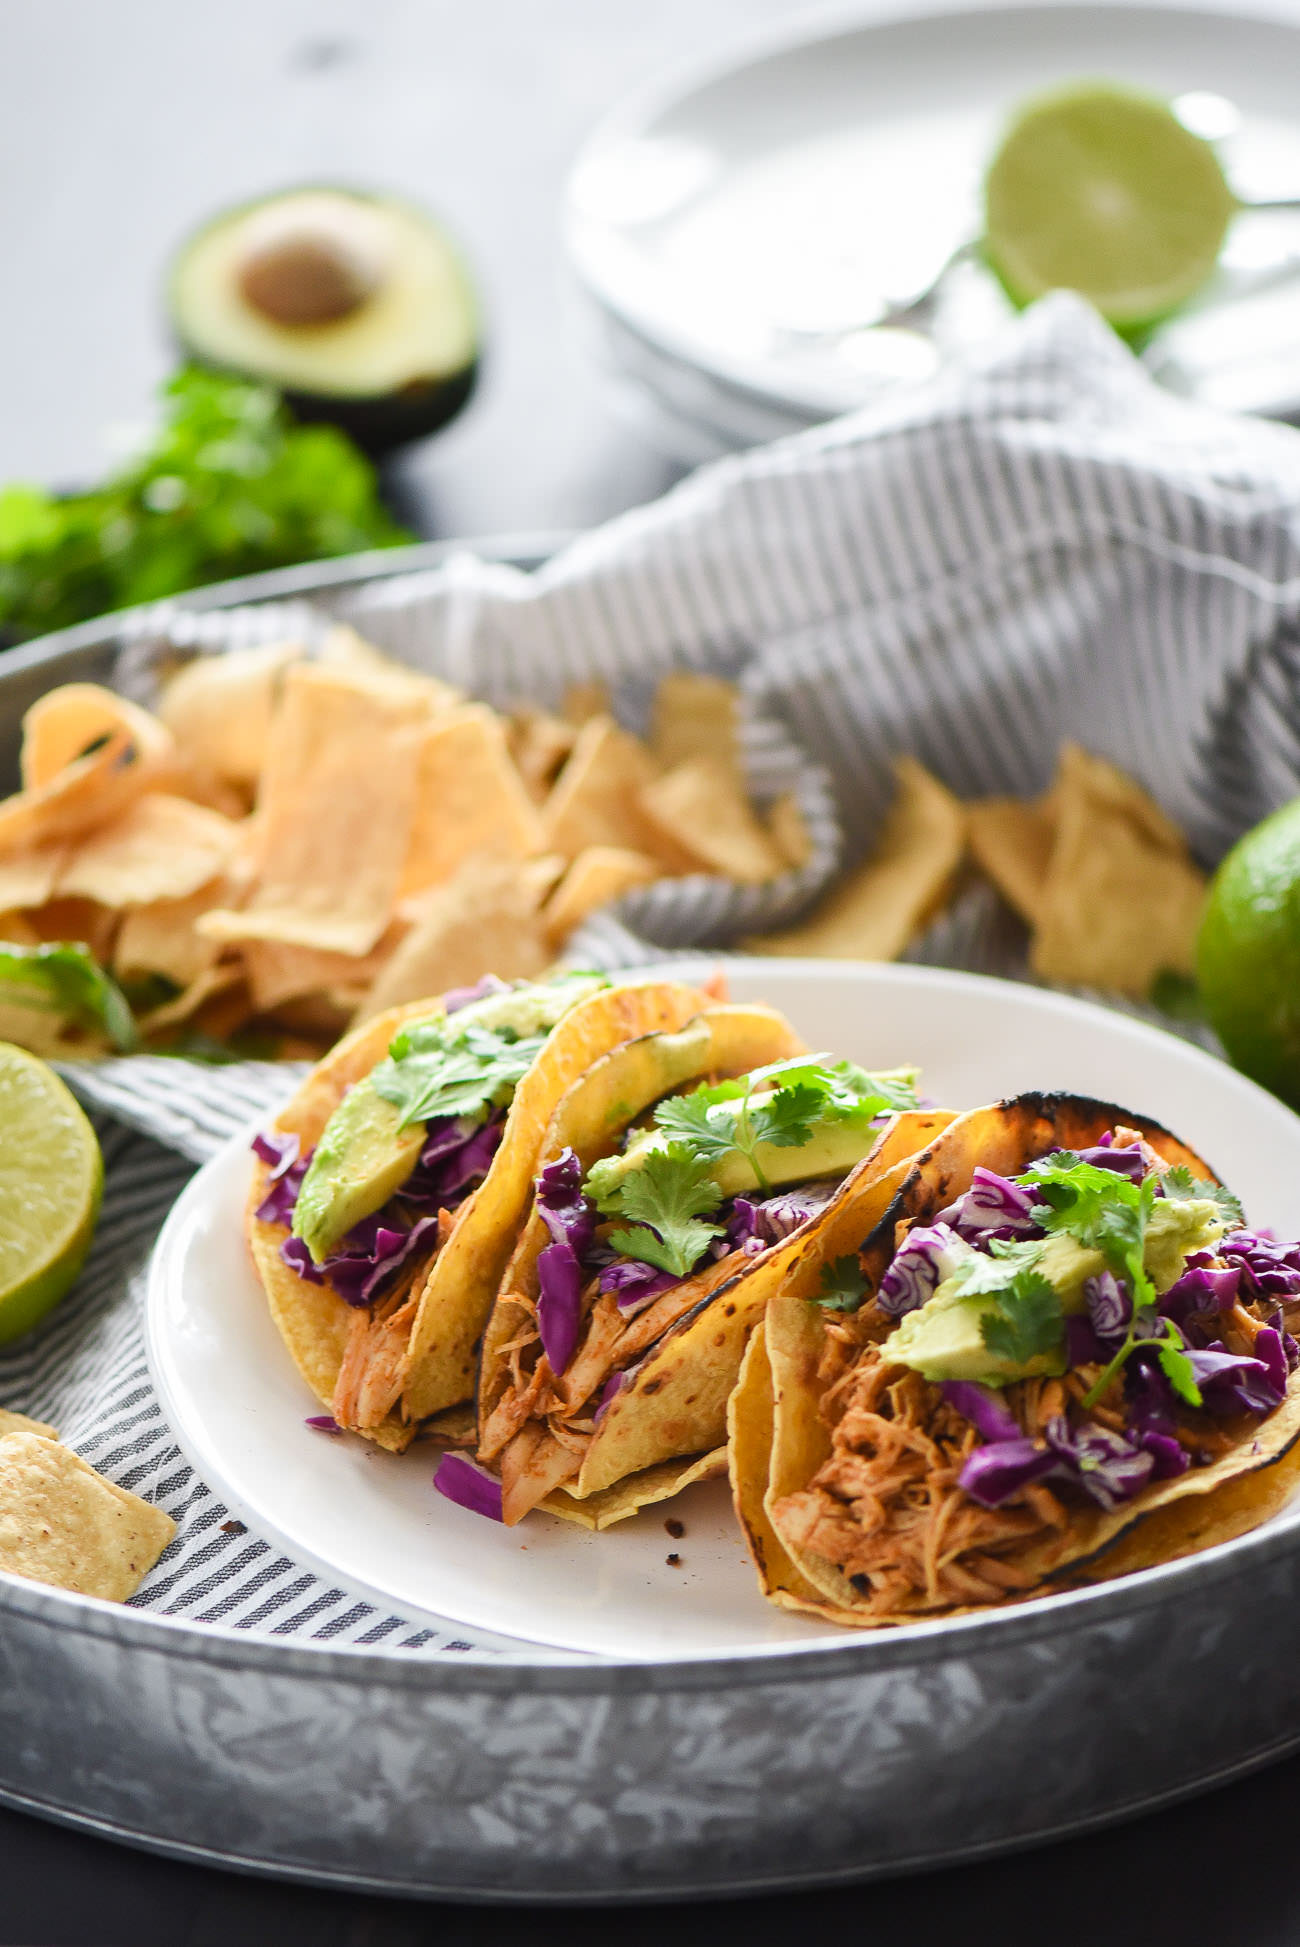 Slow Cooker Honey Chipotle Chicken Tacos are slightly sweet and slightly spicy! The slow cooked chicken is fall apart tender, juicy and full of chipotle and honey! Delicious in tacos or over lettuce for a lighter option!